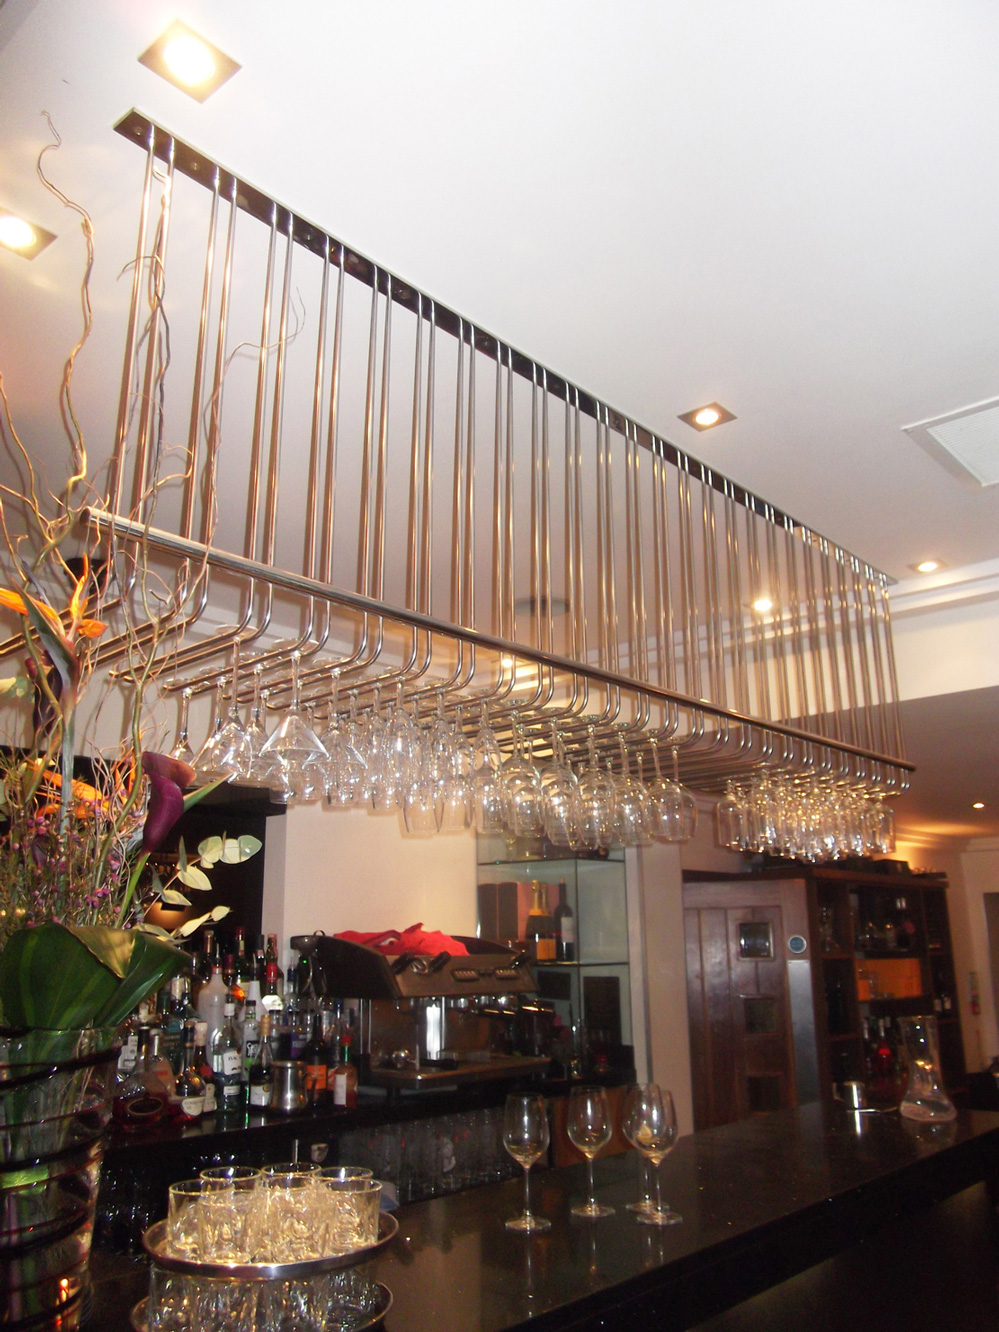 Polished Stainless Steel Wine Glass Racks